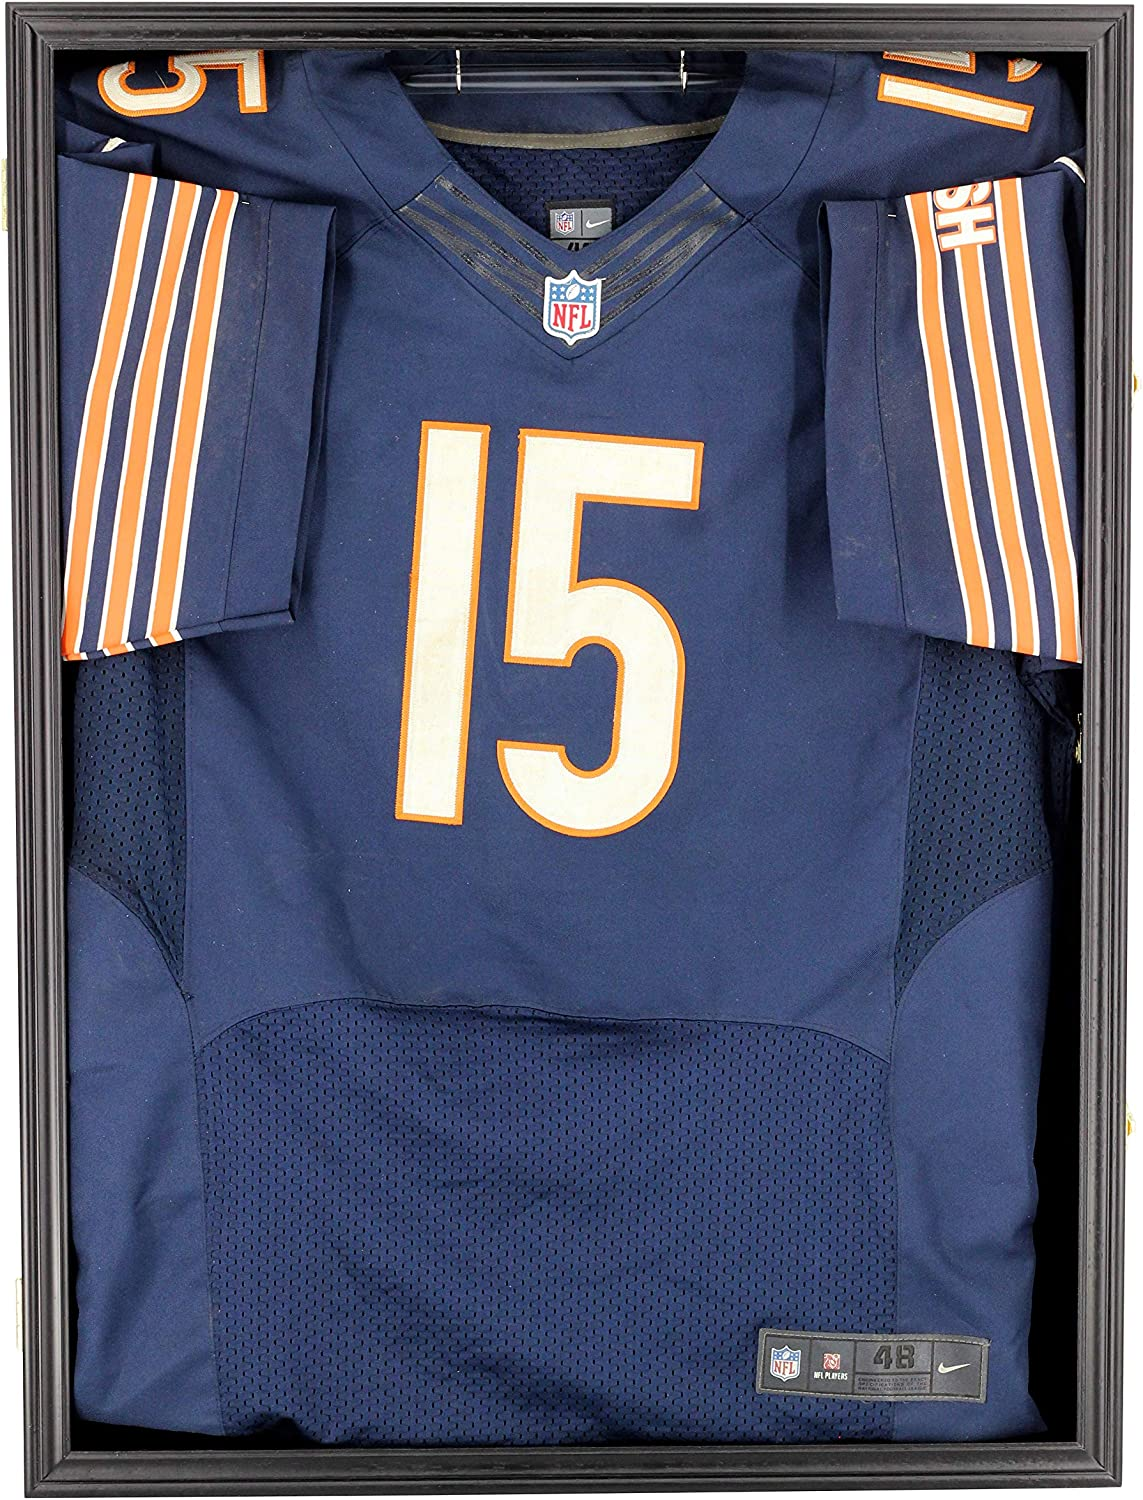 DisplayGifts Lockable PRO UV Clearance SALE Limited time Basketball Football Jersey F Regular store Hockey